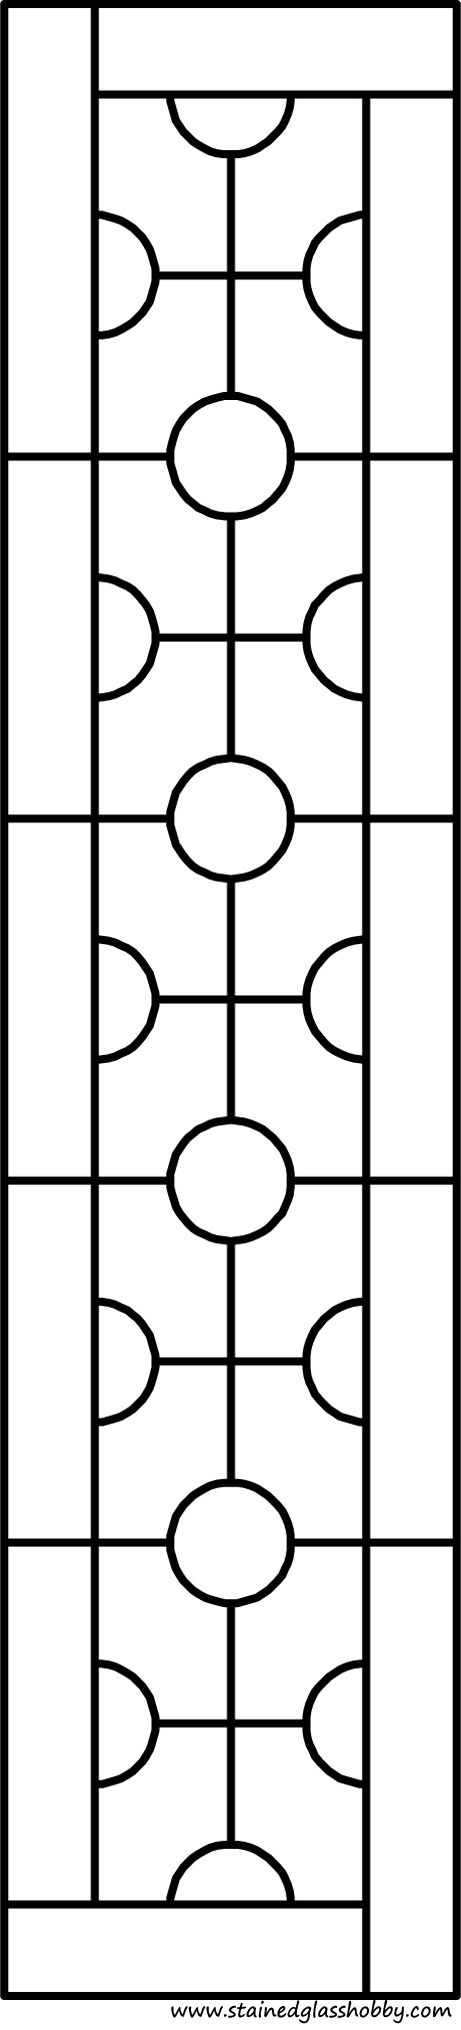 Rectangular panel for stained glass pattern 6